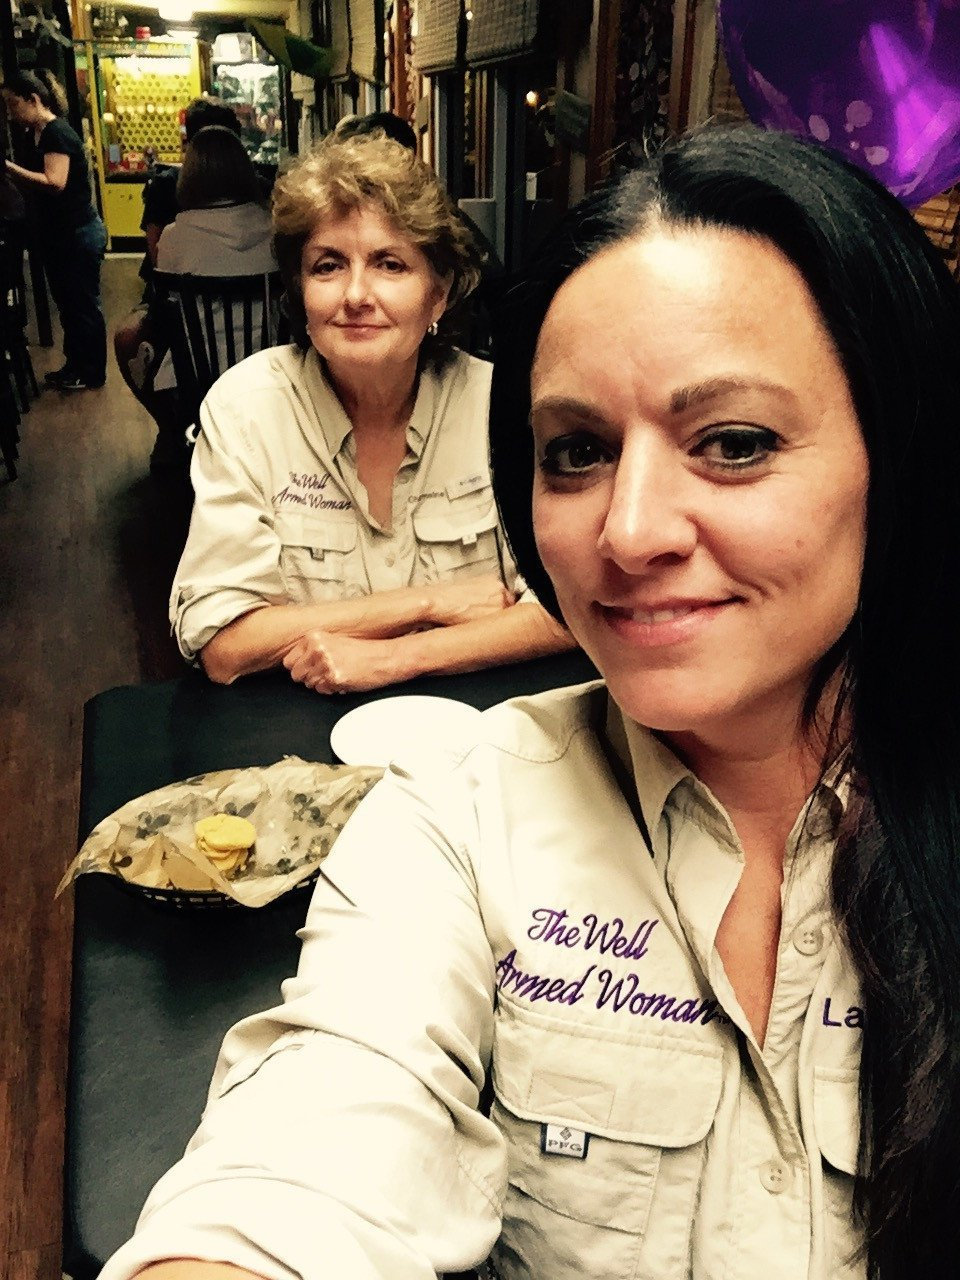 The Well Armed Woman-Bayou Region Chapter